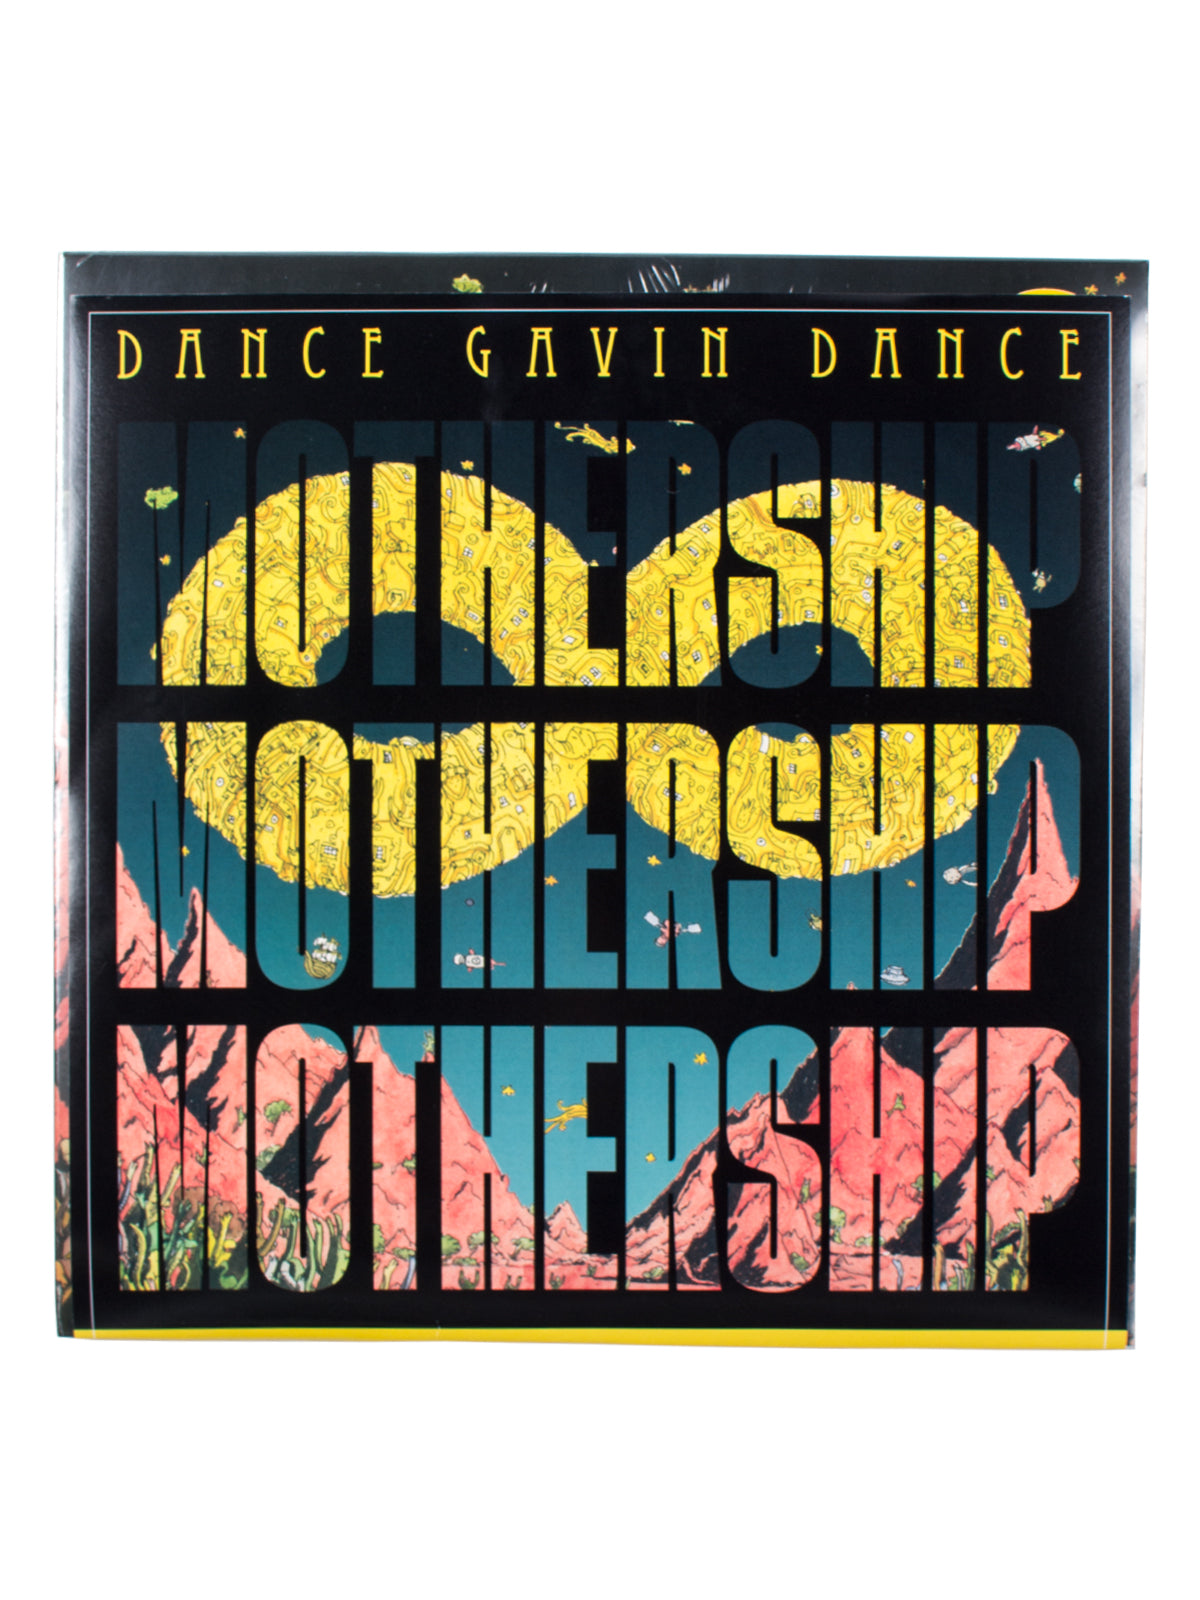 Dance Gavin Dance - Mothership Alternate Cover Vinyl LP - Merch Limited